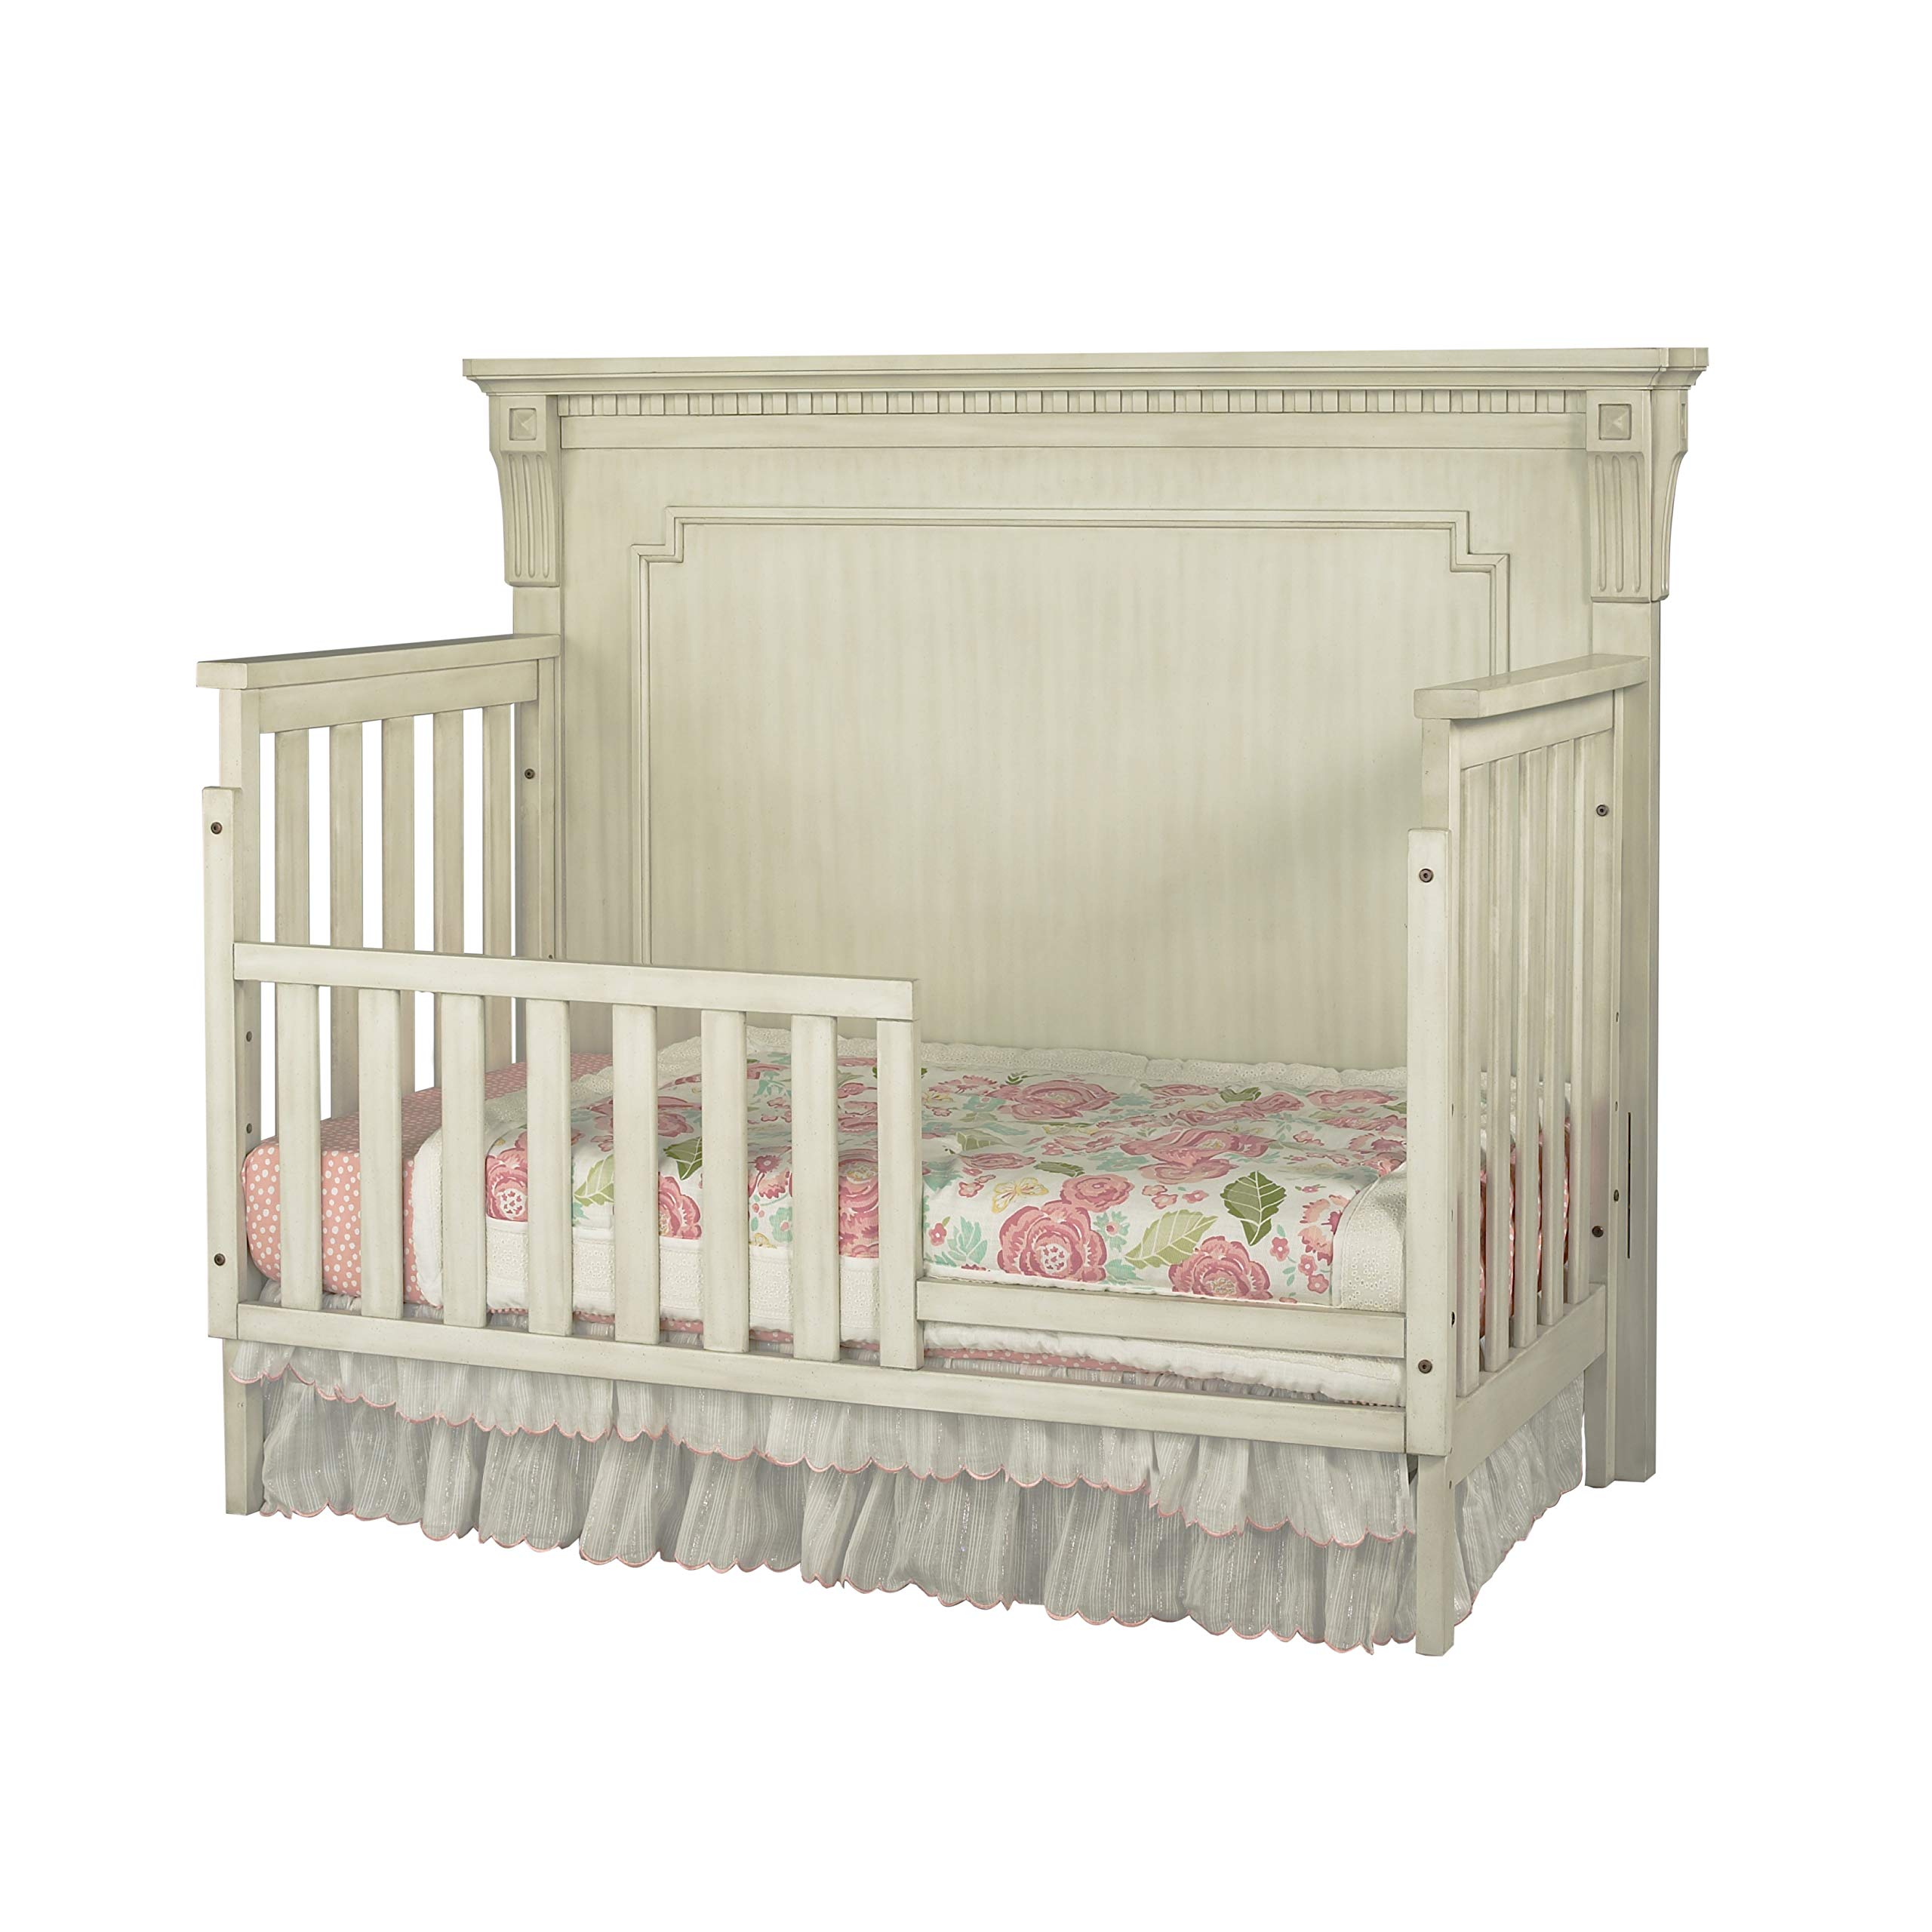 Oxford Baby Mid Century Claremont Guard Rail, Antique White by Oxford Baby (Image #4)